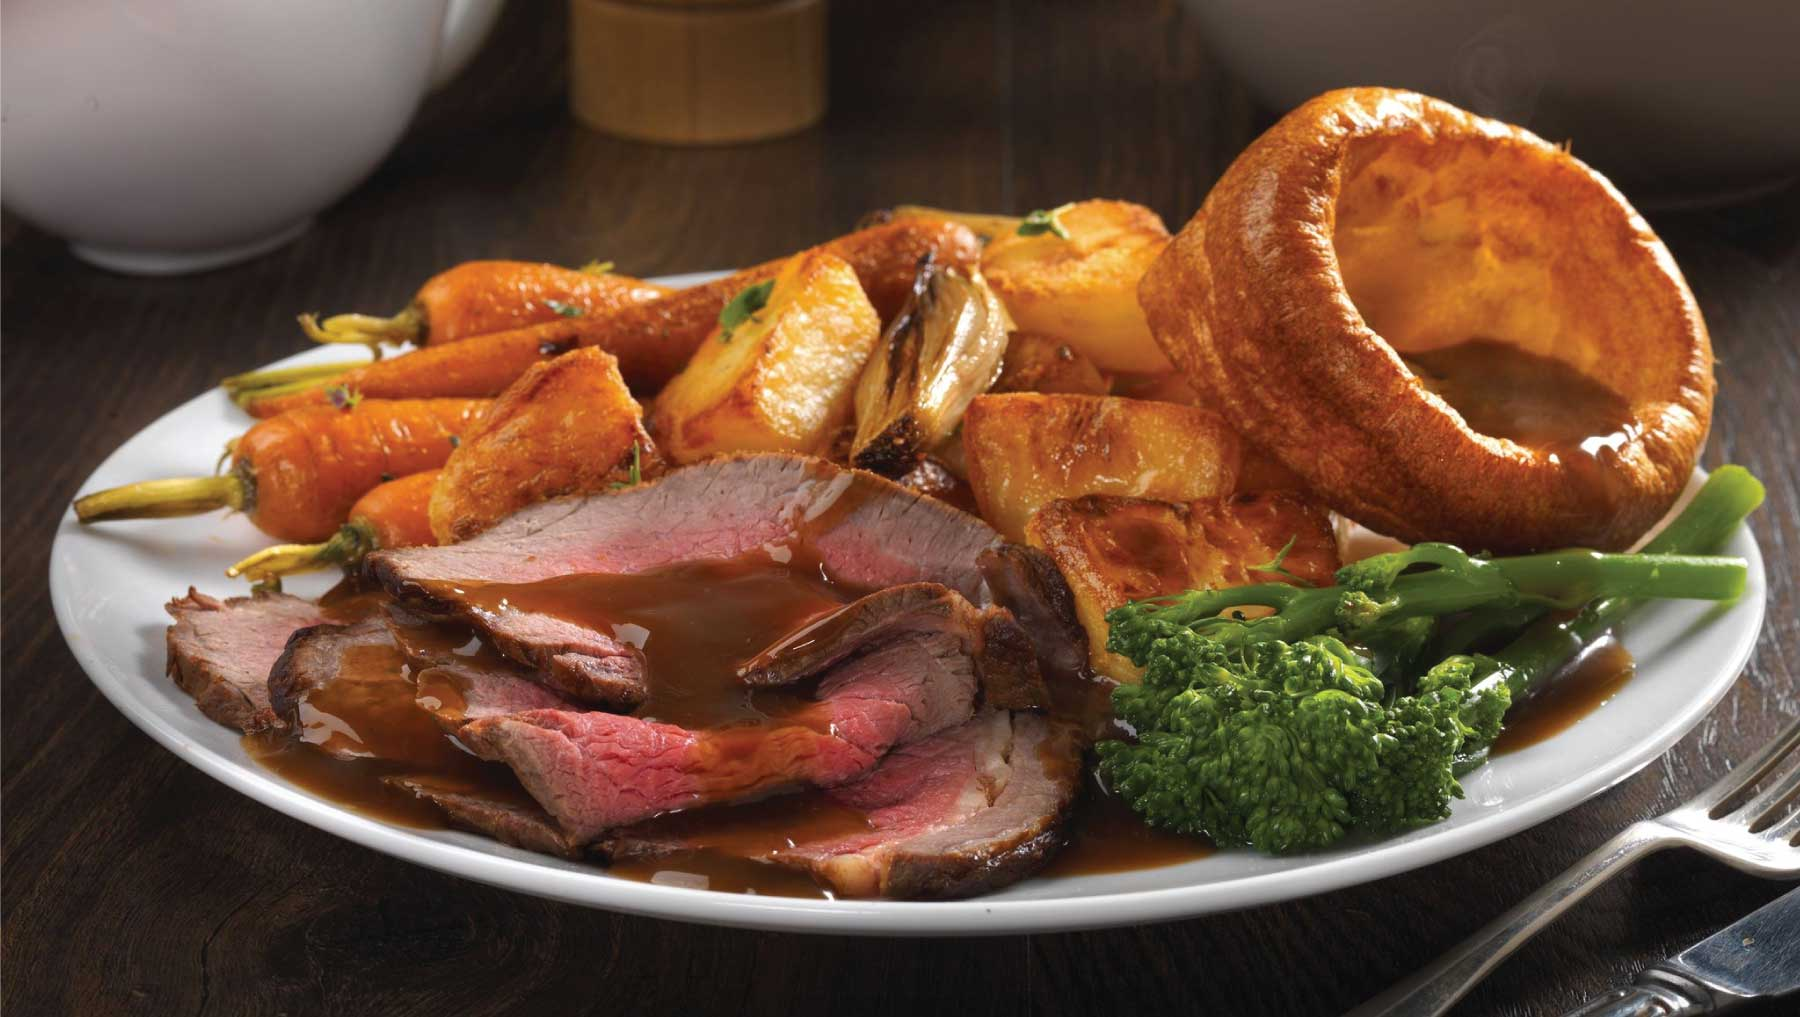 Carvery In West Yorkshire The 6 Acres The 6 Acres Bar